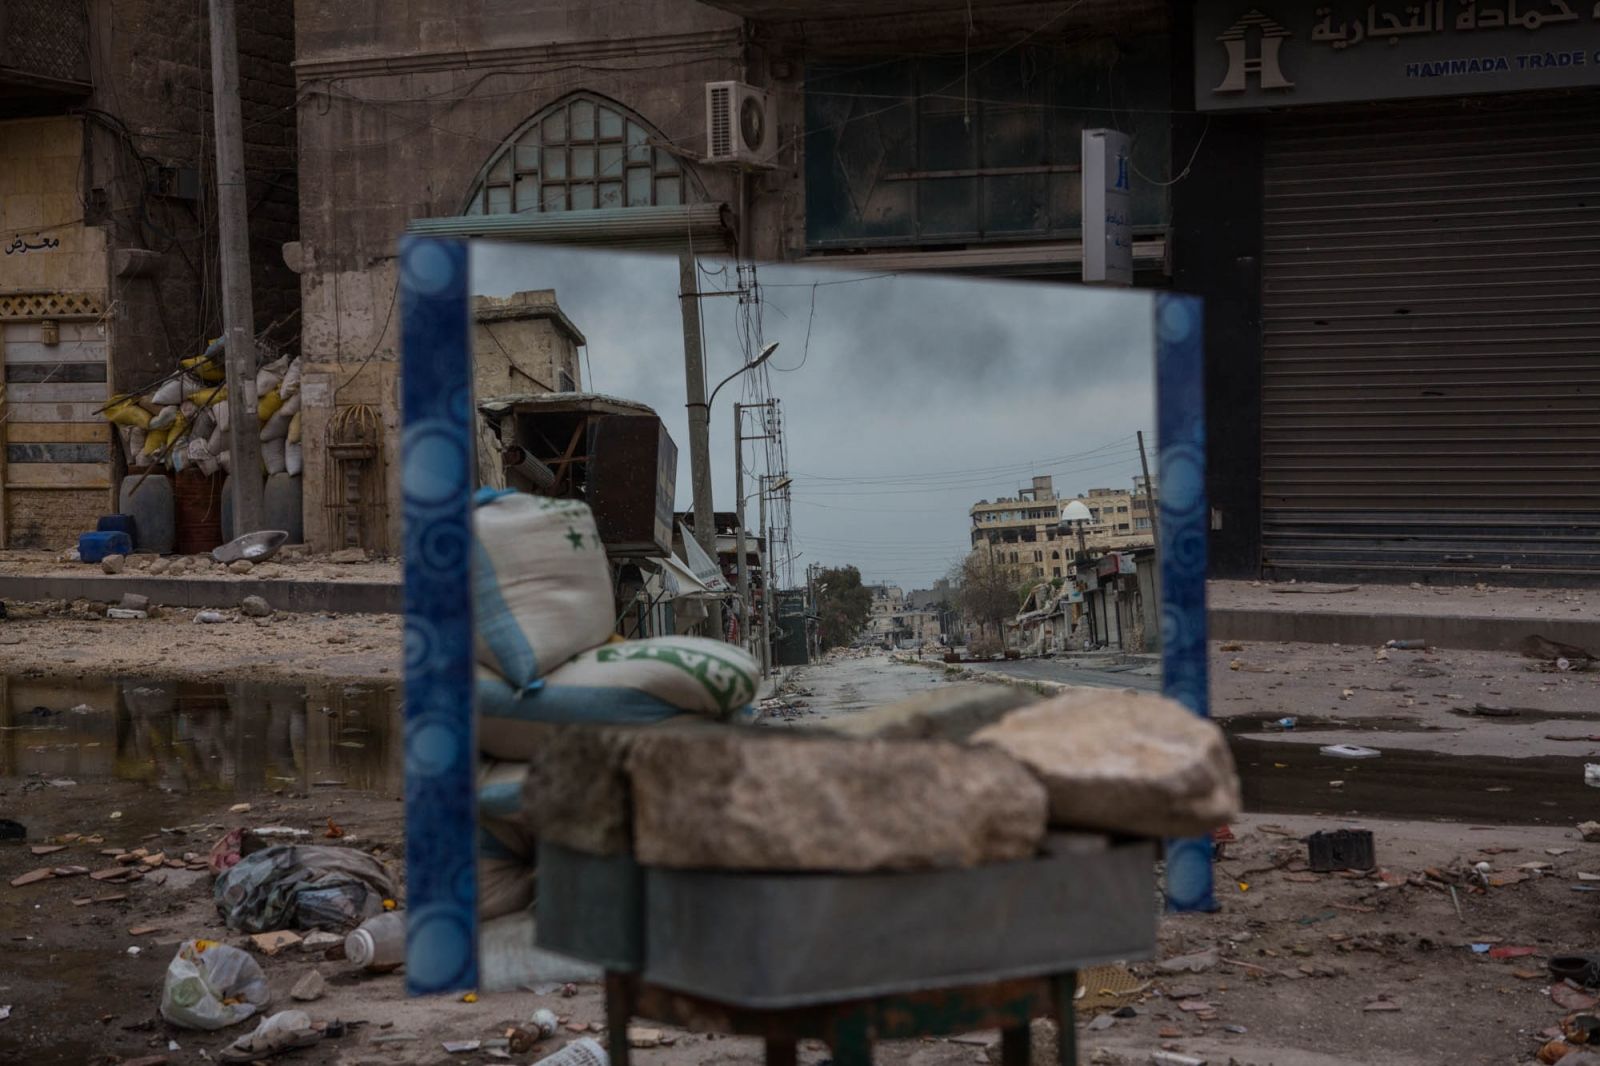 A mirror, reflecting a street and a building where government snipers are in hiding, balances on a stool in the Old City of Aleppo, Syria, on March 19, 2013.